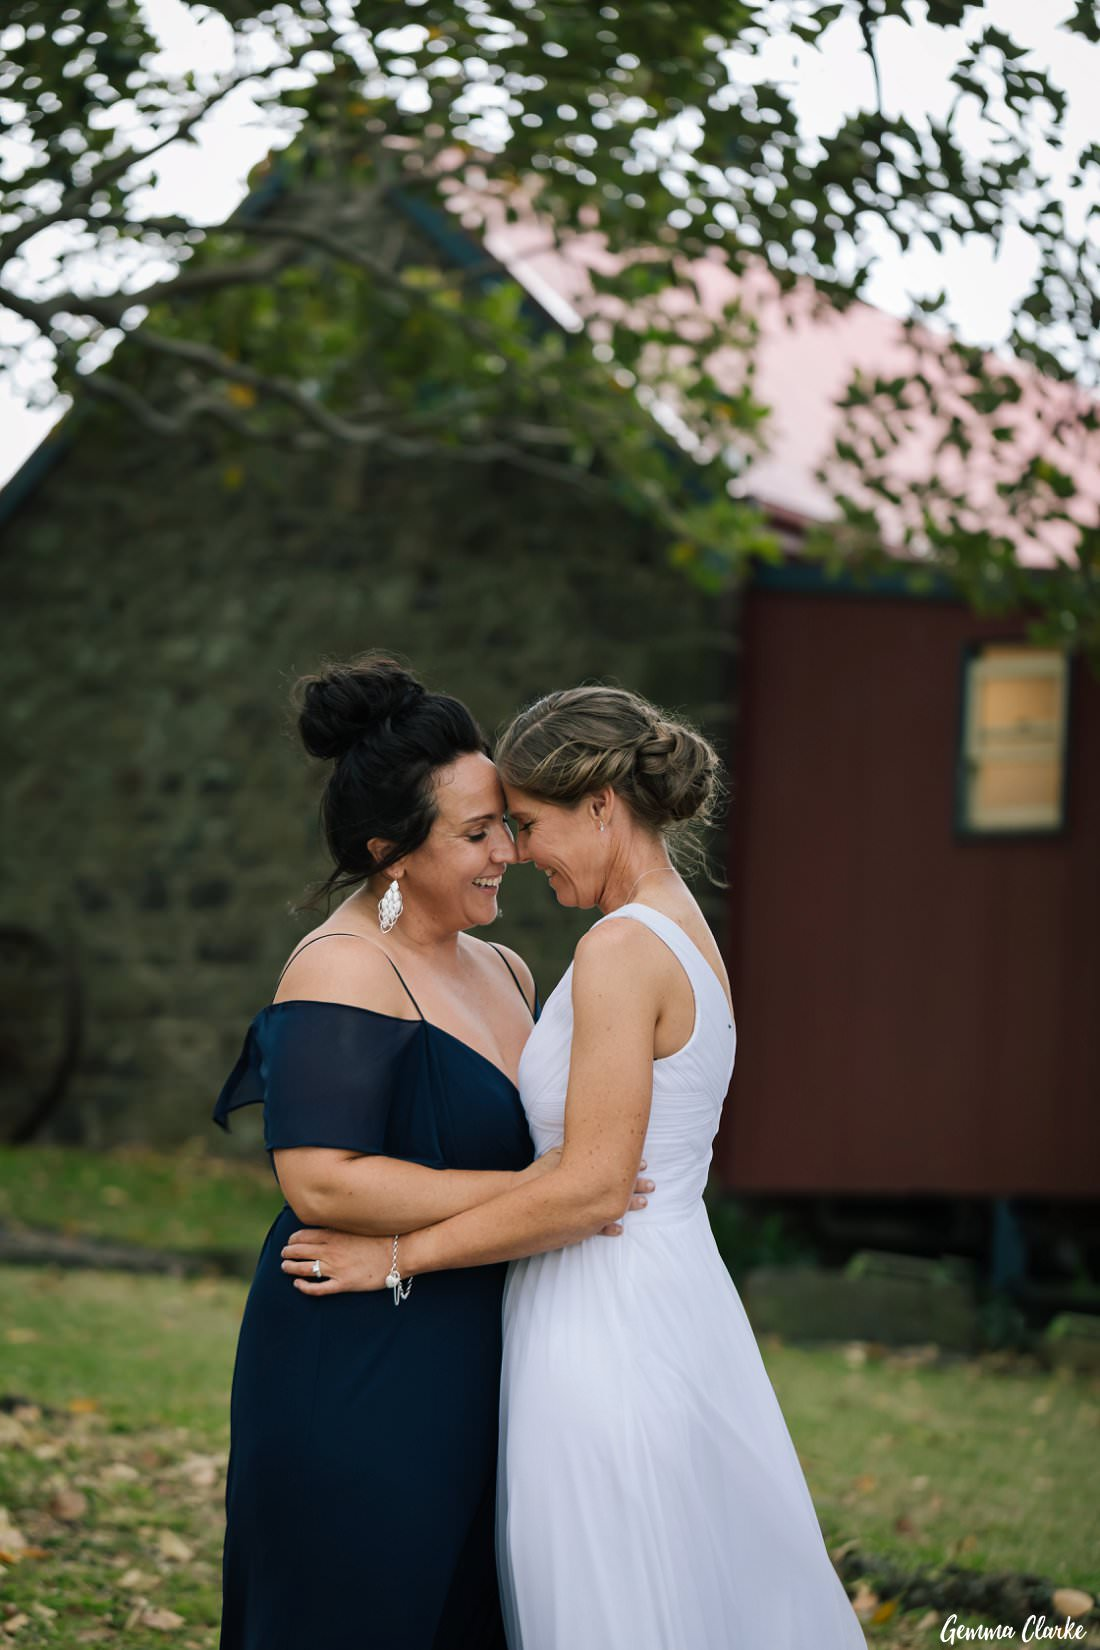 True happiness for these brides at their same sex Kiama wedding and their smiles could not be bigger!